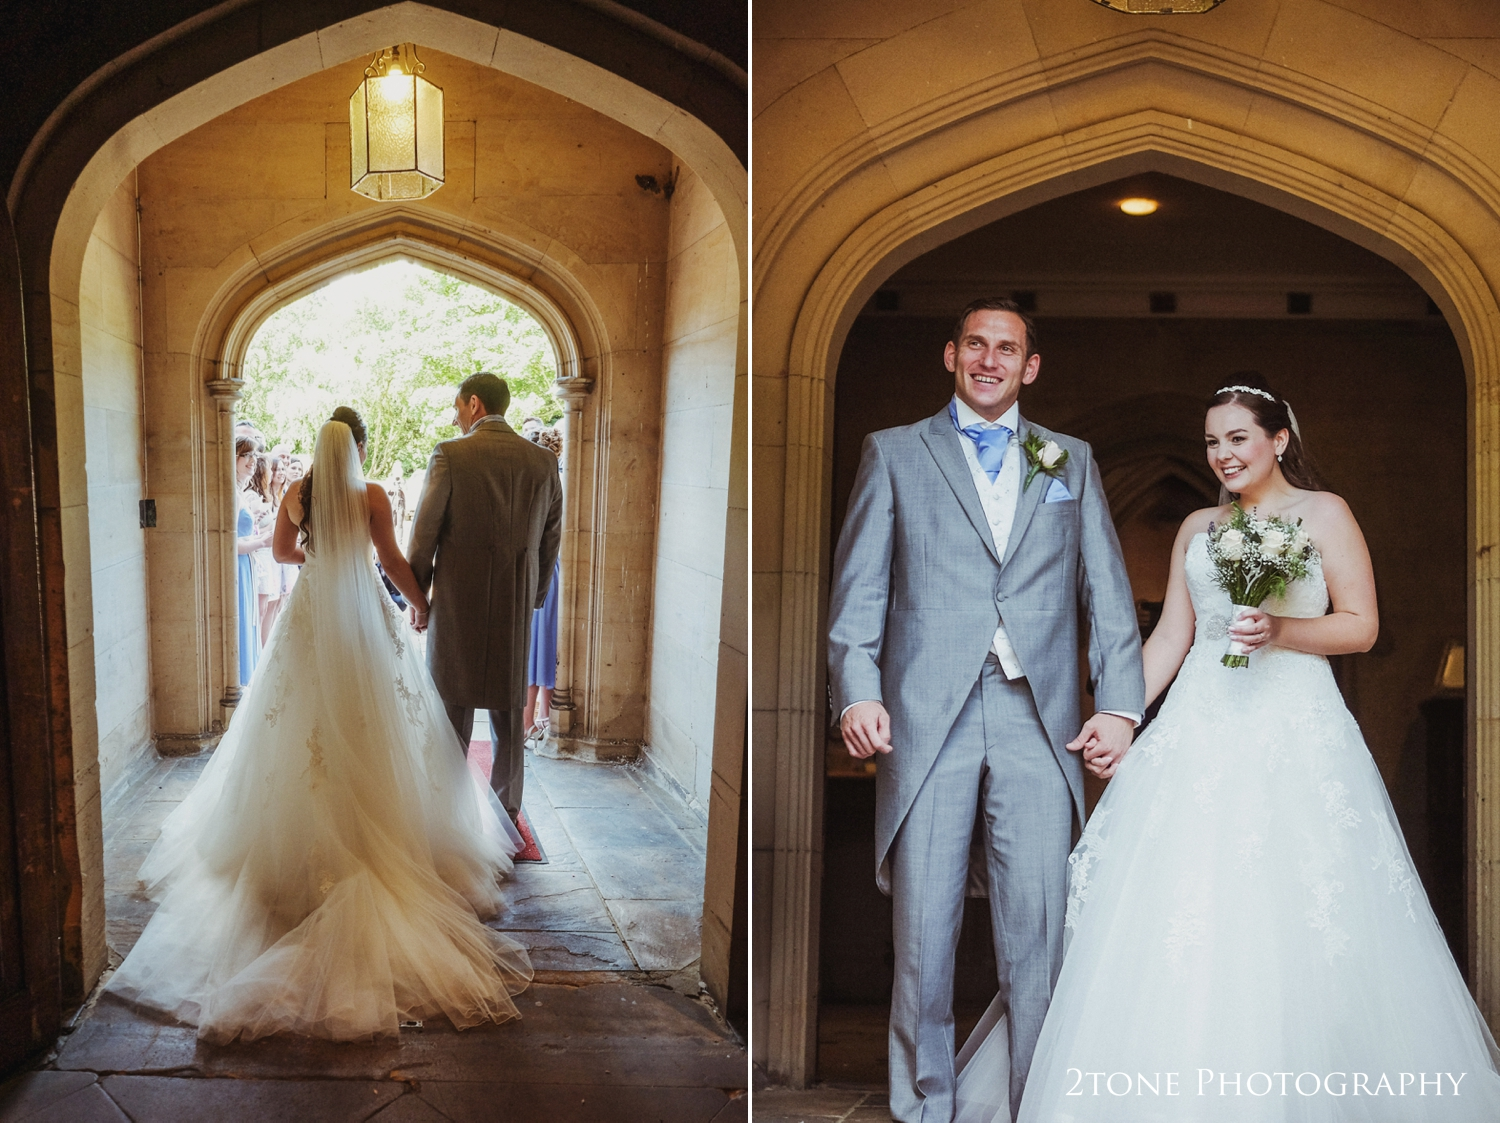 Natalie and Russell were lucky enough to have stunning weather for their wedding day and so everyone headed straight outside to enjoy it.